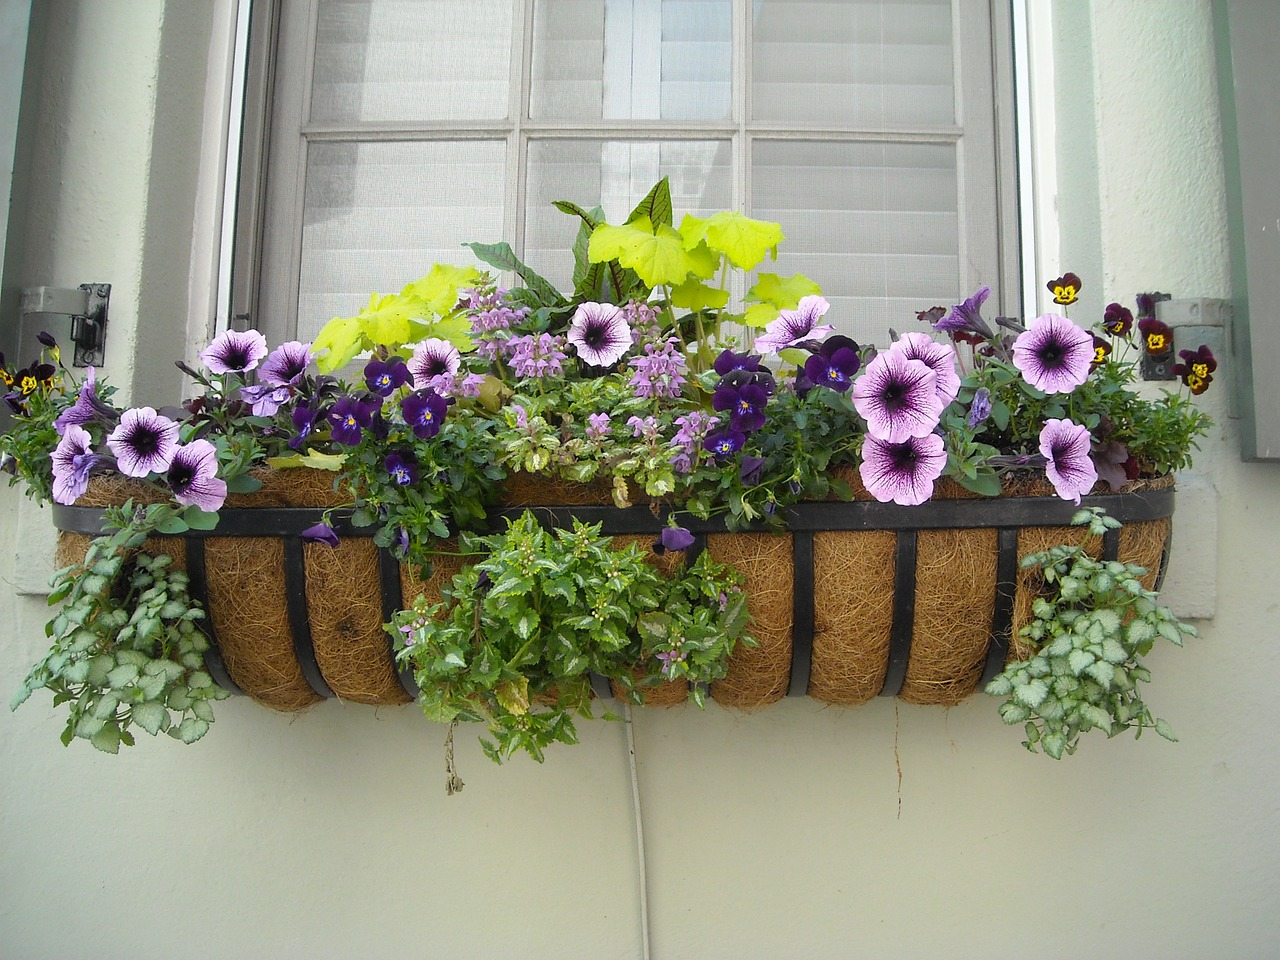 Railing Planter Boxes - 10 Minutes for mom